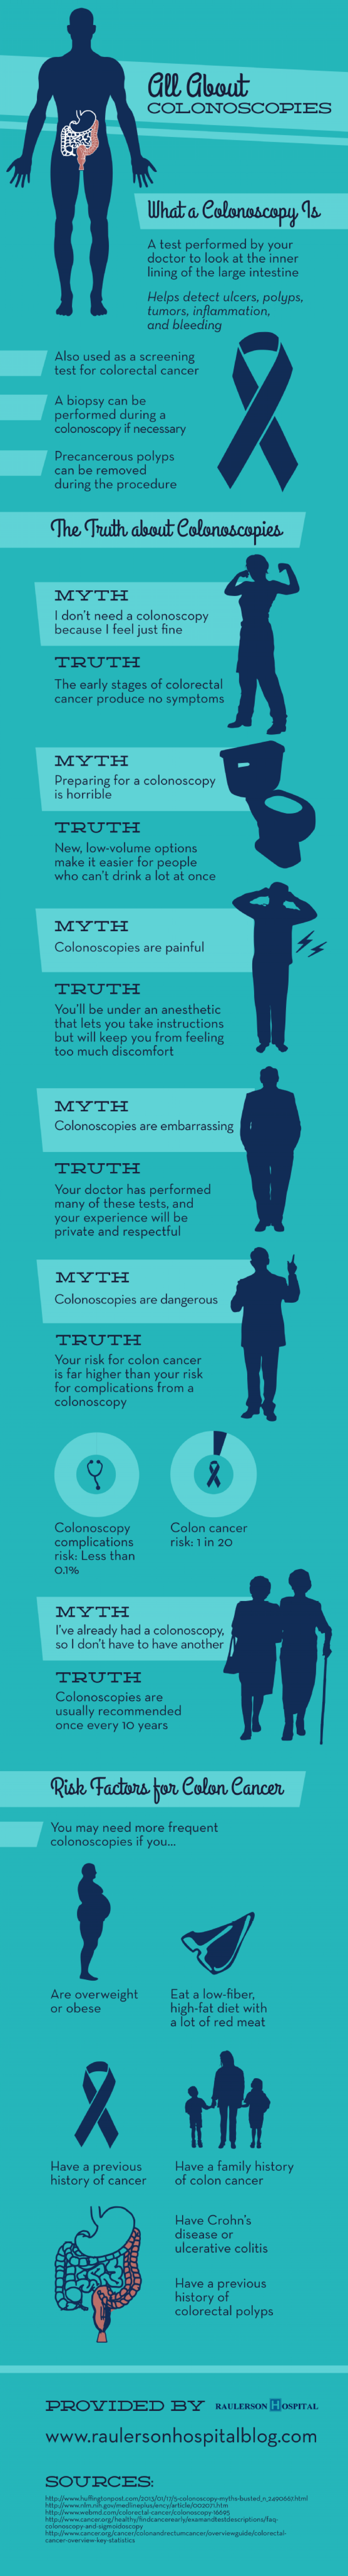 All About Colonoscopies  Infographic